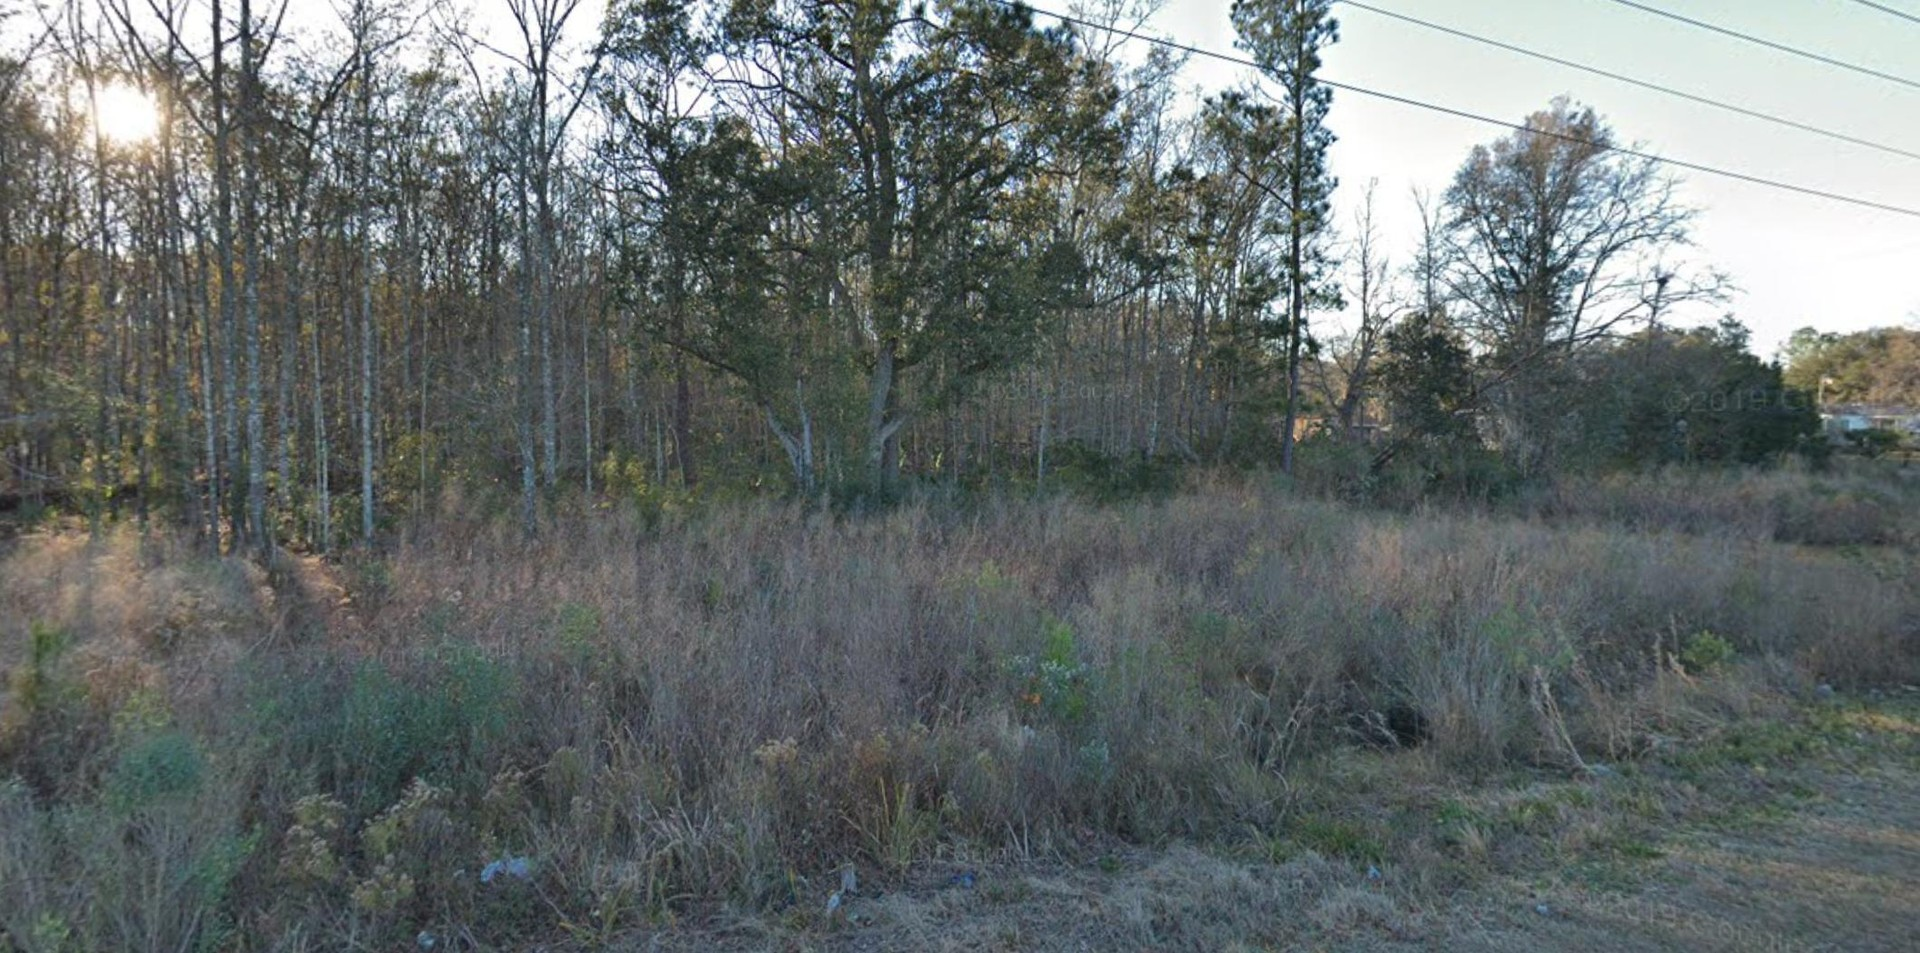 Land in Fairview Plantation